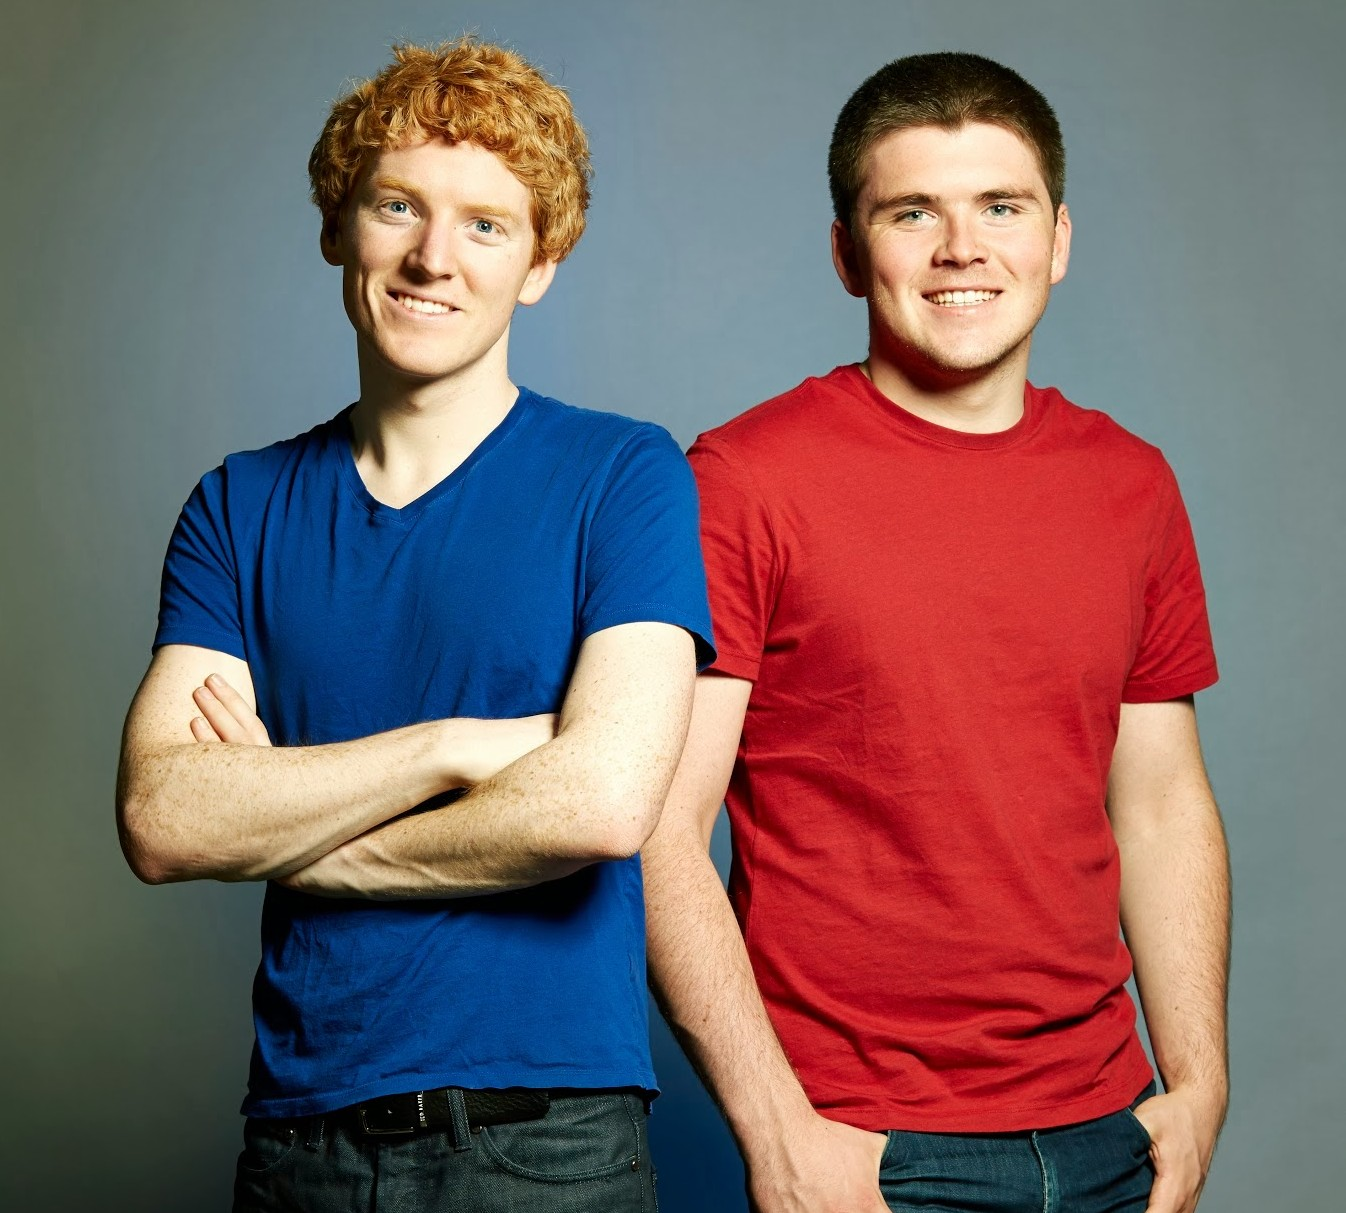 Stripe's young co-founders, Patrick and John Collison.